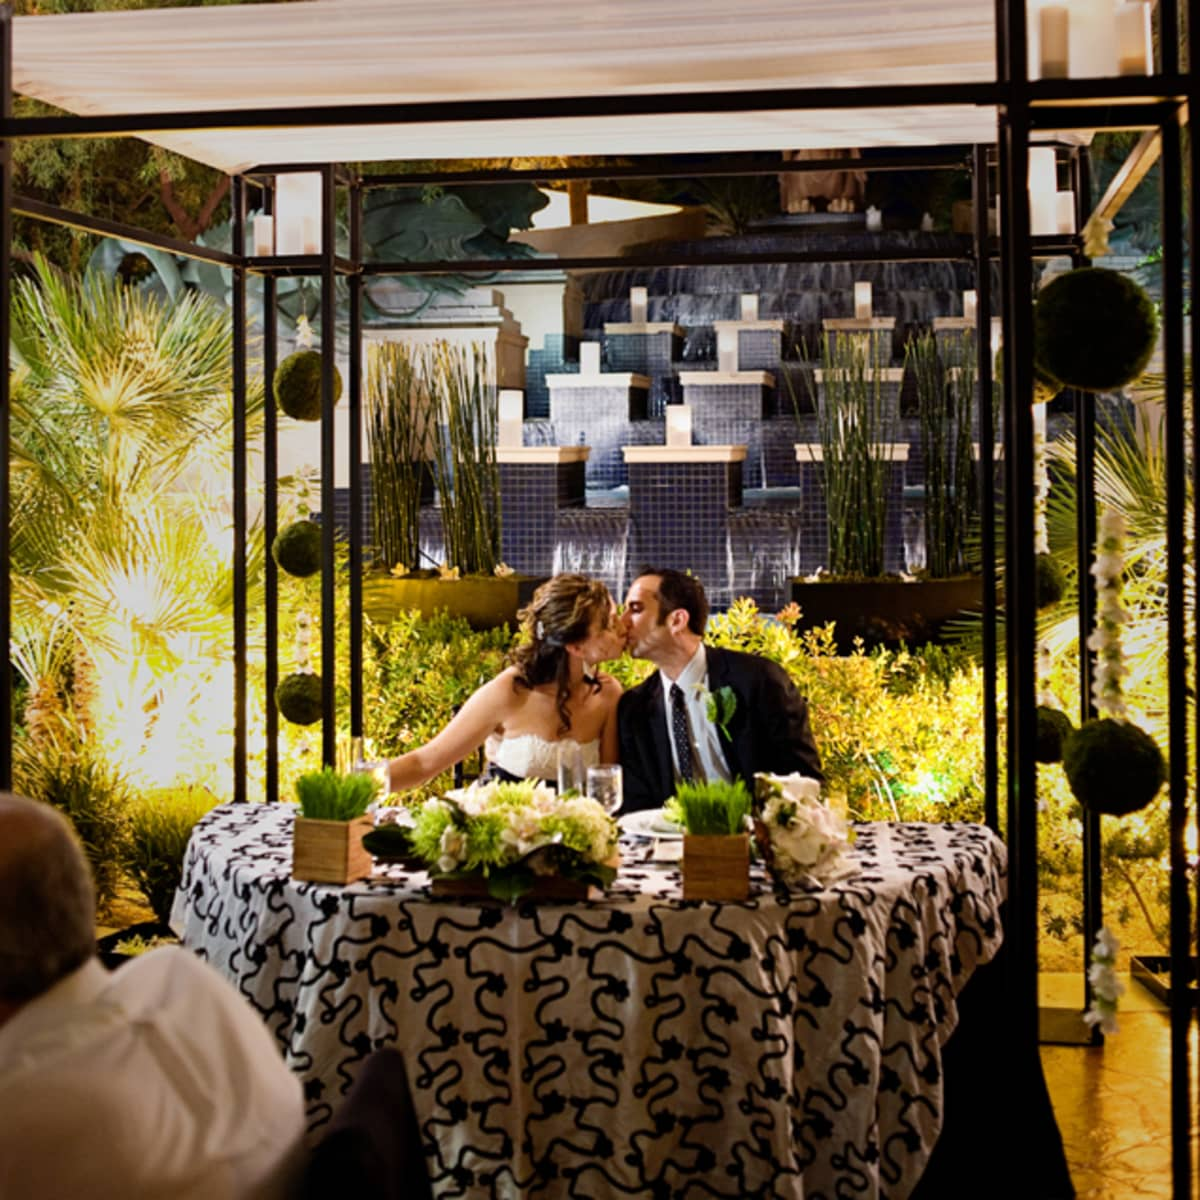 The Newlyweds Dine Underneath Ceremony Canopy